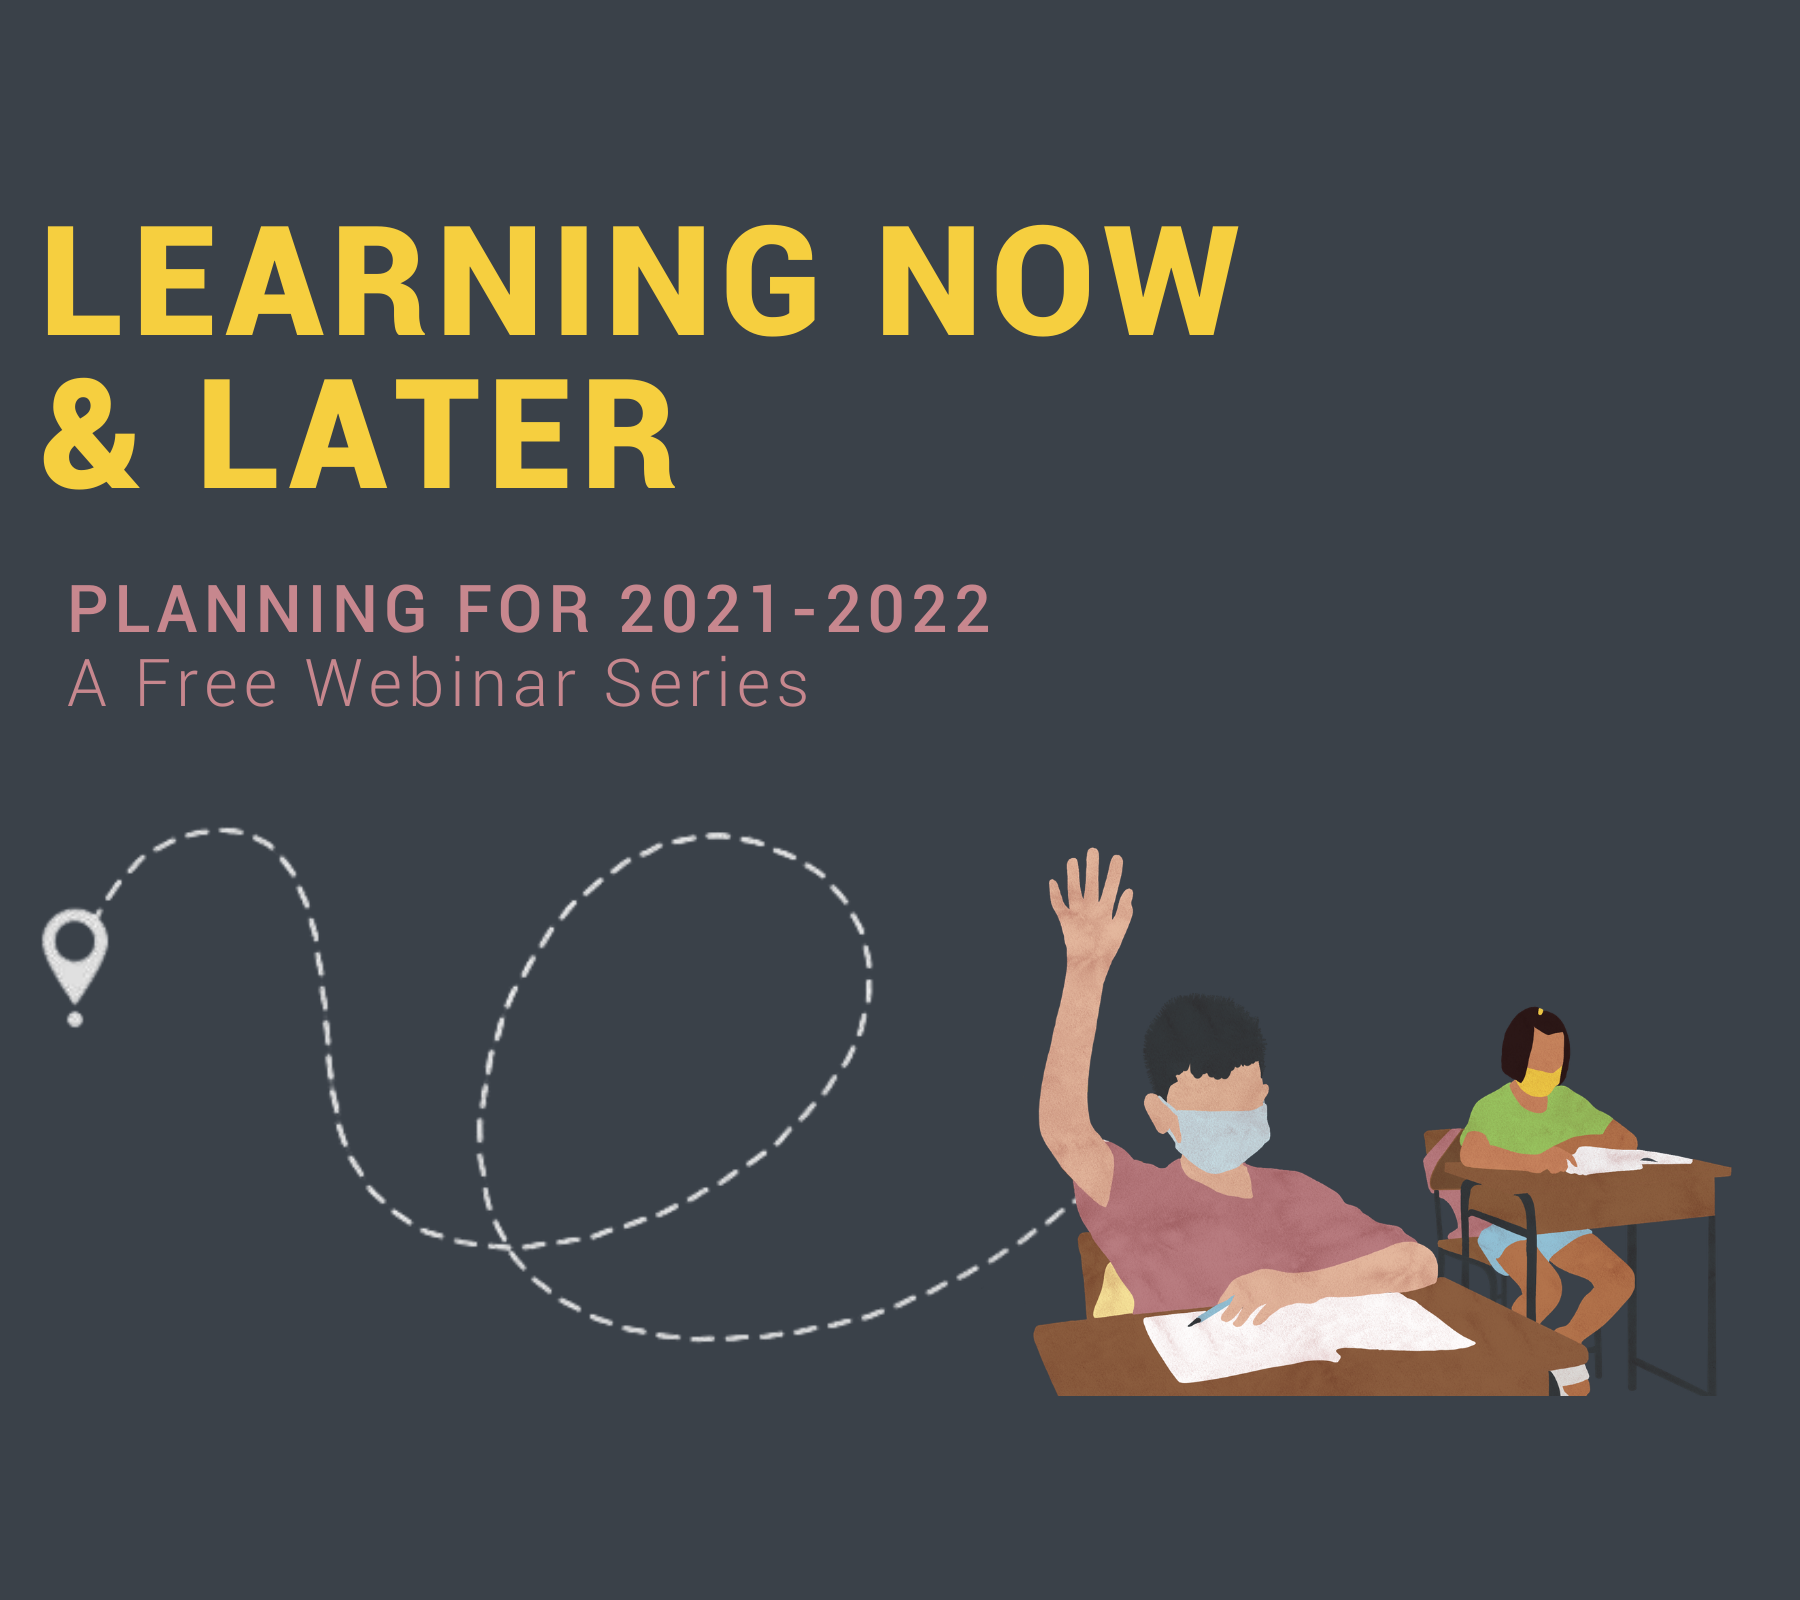 learning now and later webinar series 2021